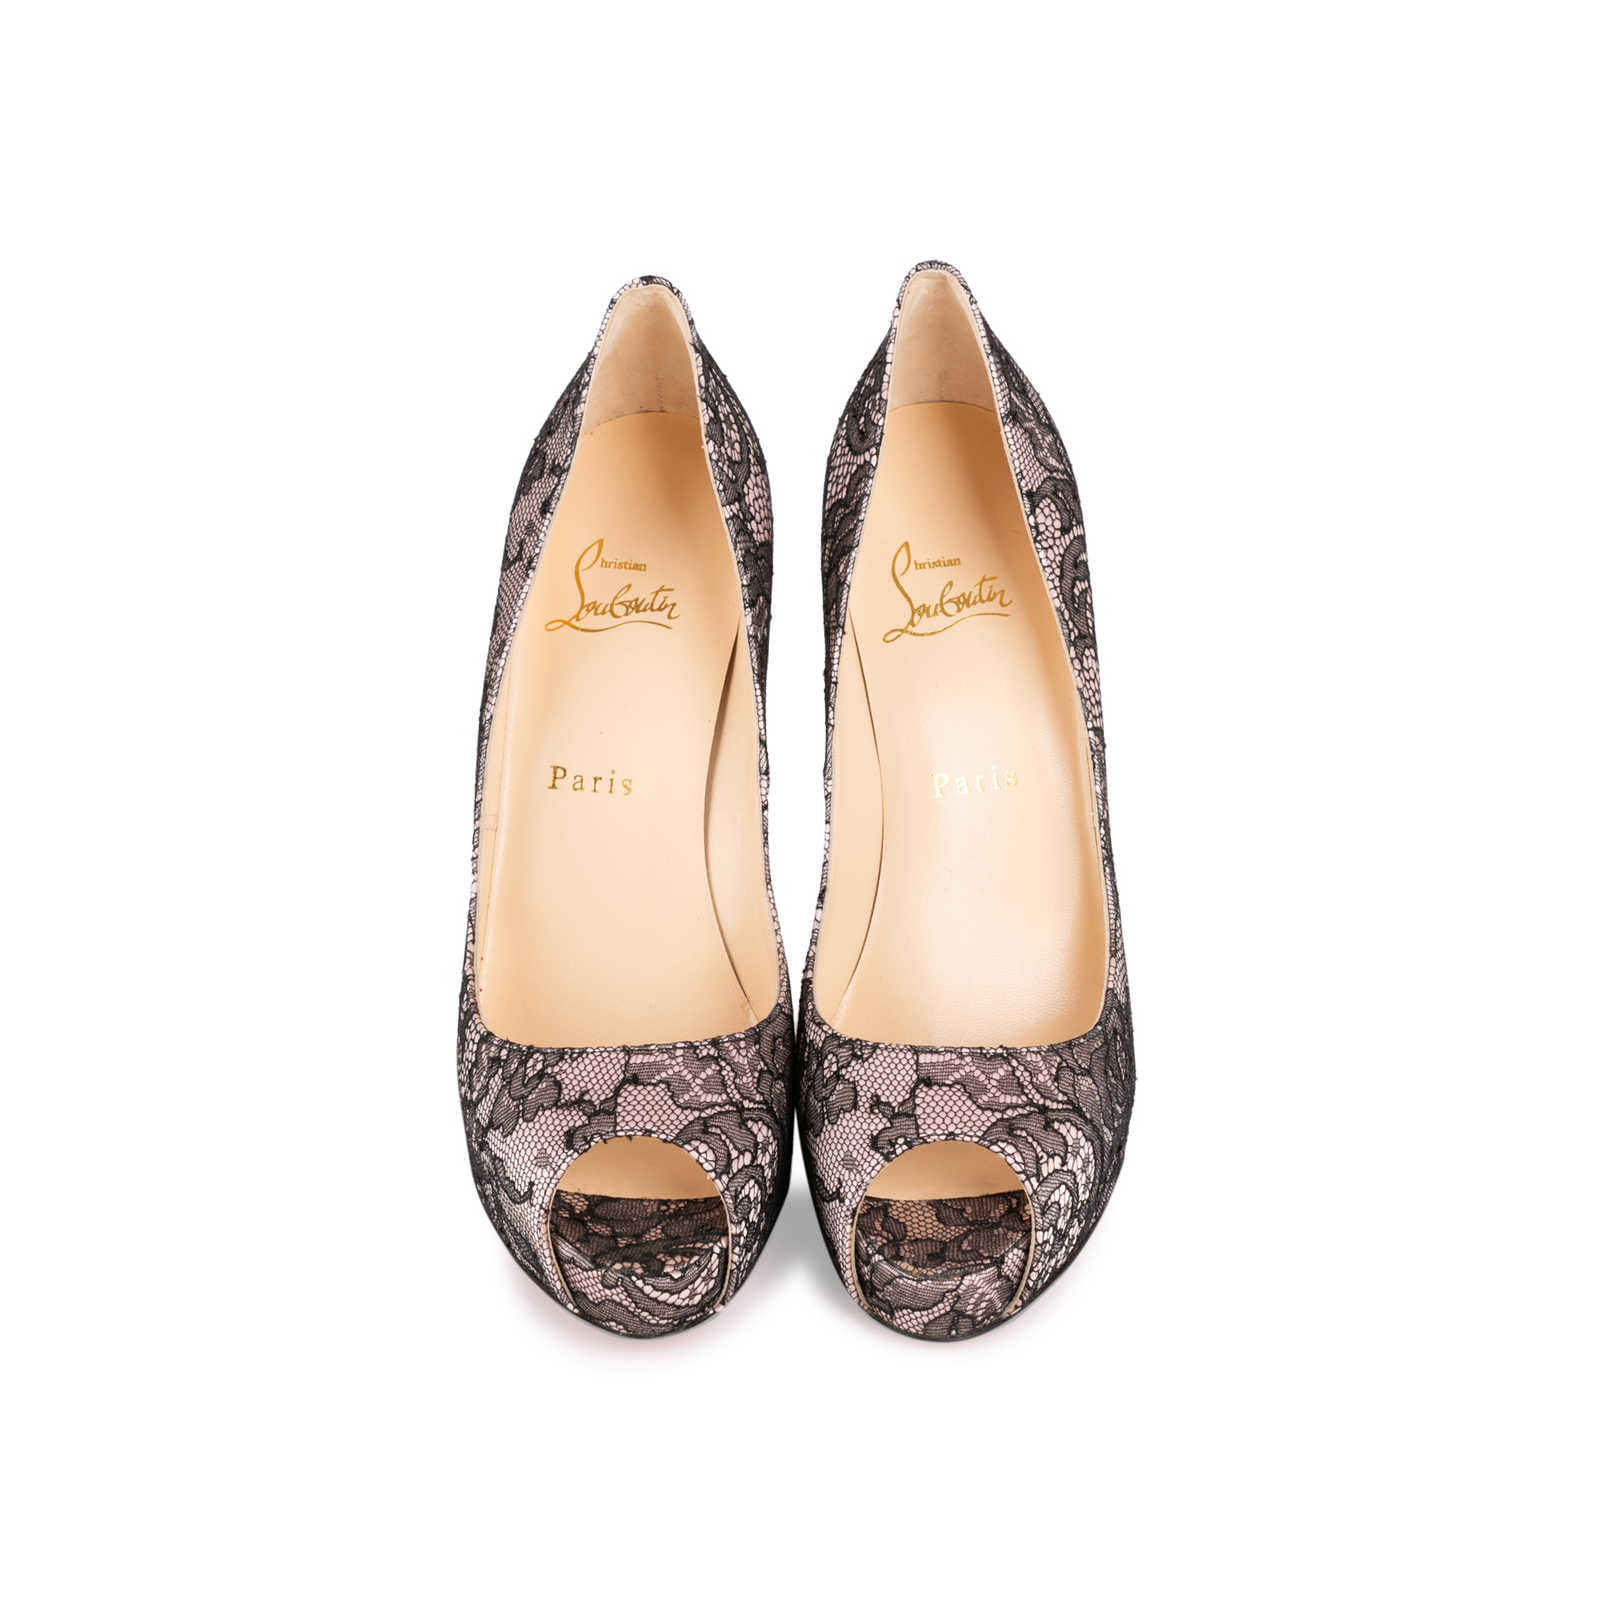 ad78d953044 Authentic Second Hand Christian Louboutin Very Prive 120 Pumps (PSS ...